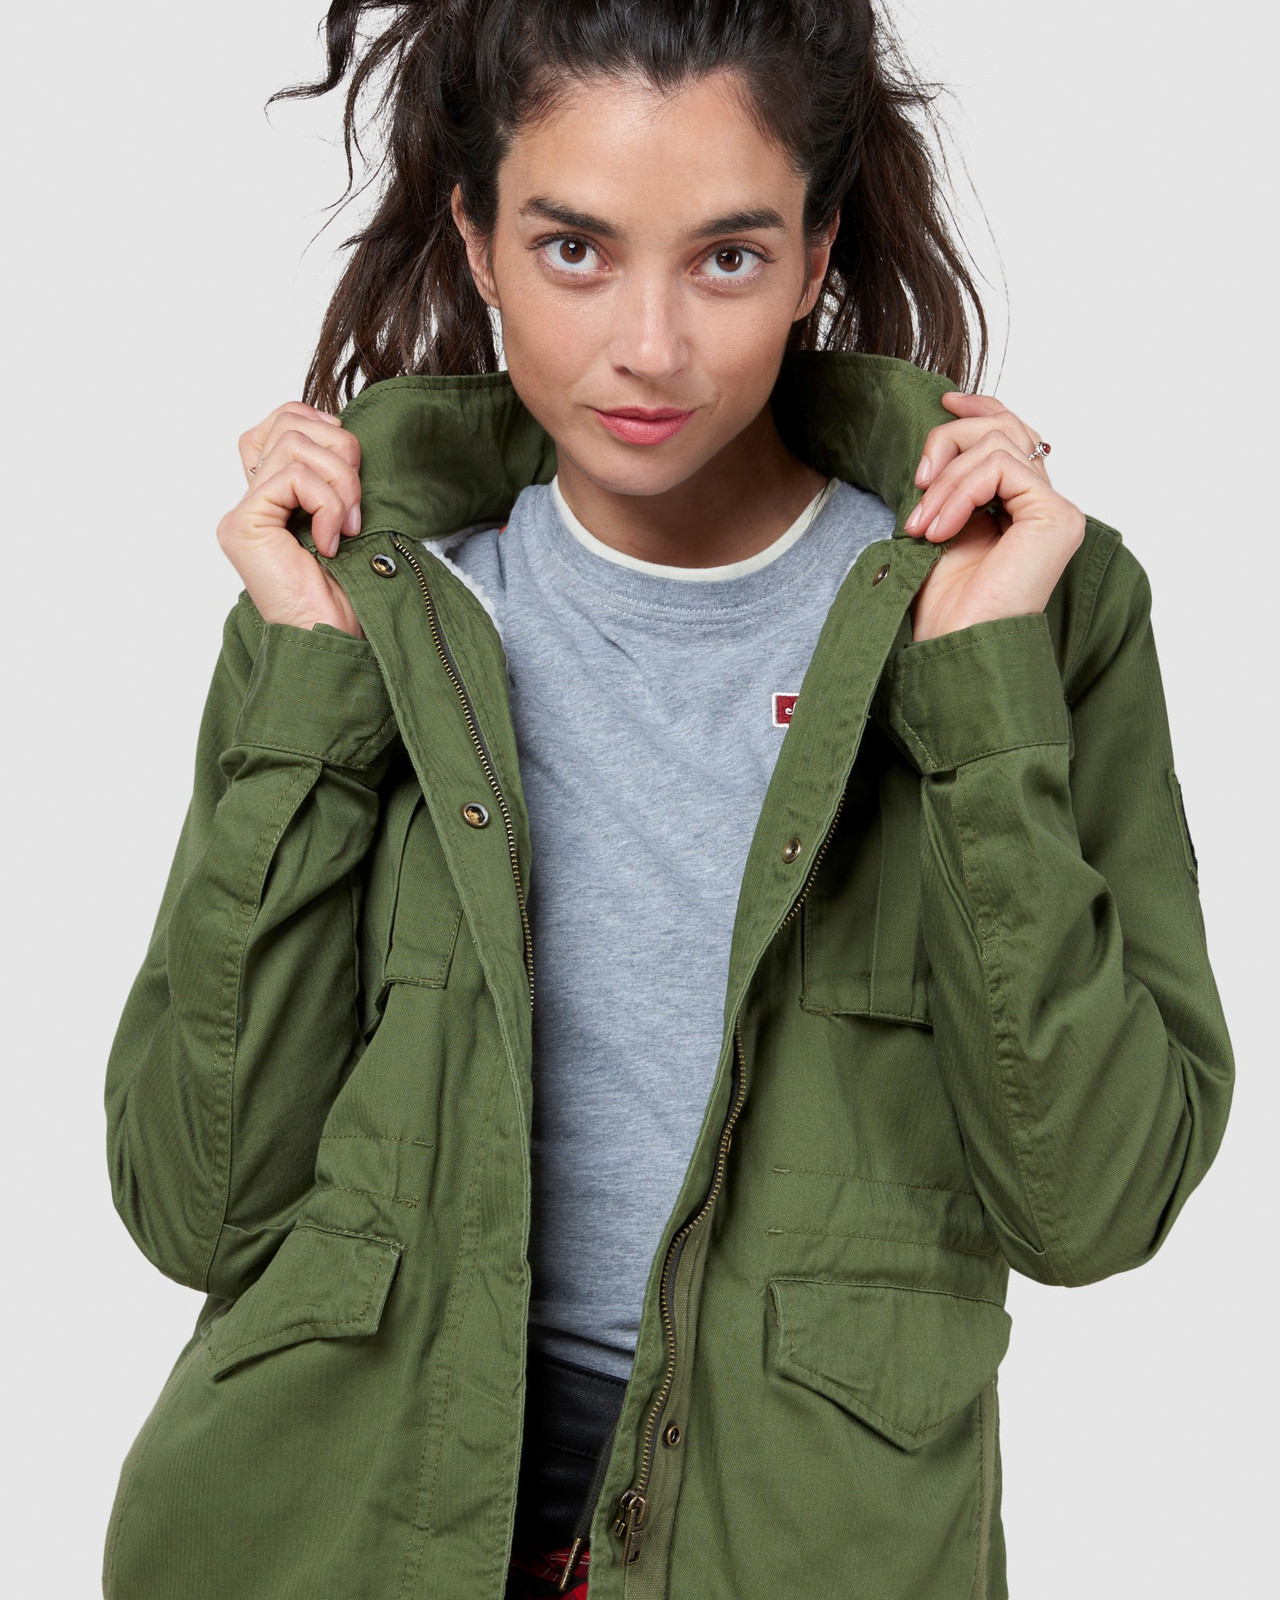 Superdry Womens CLASSIC RECRUIT BORG JACKET Green Military Jackets 5